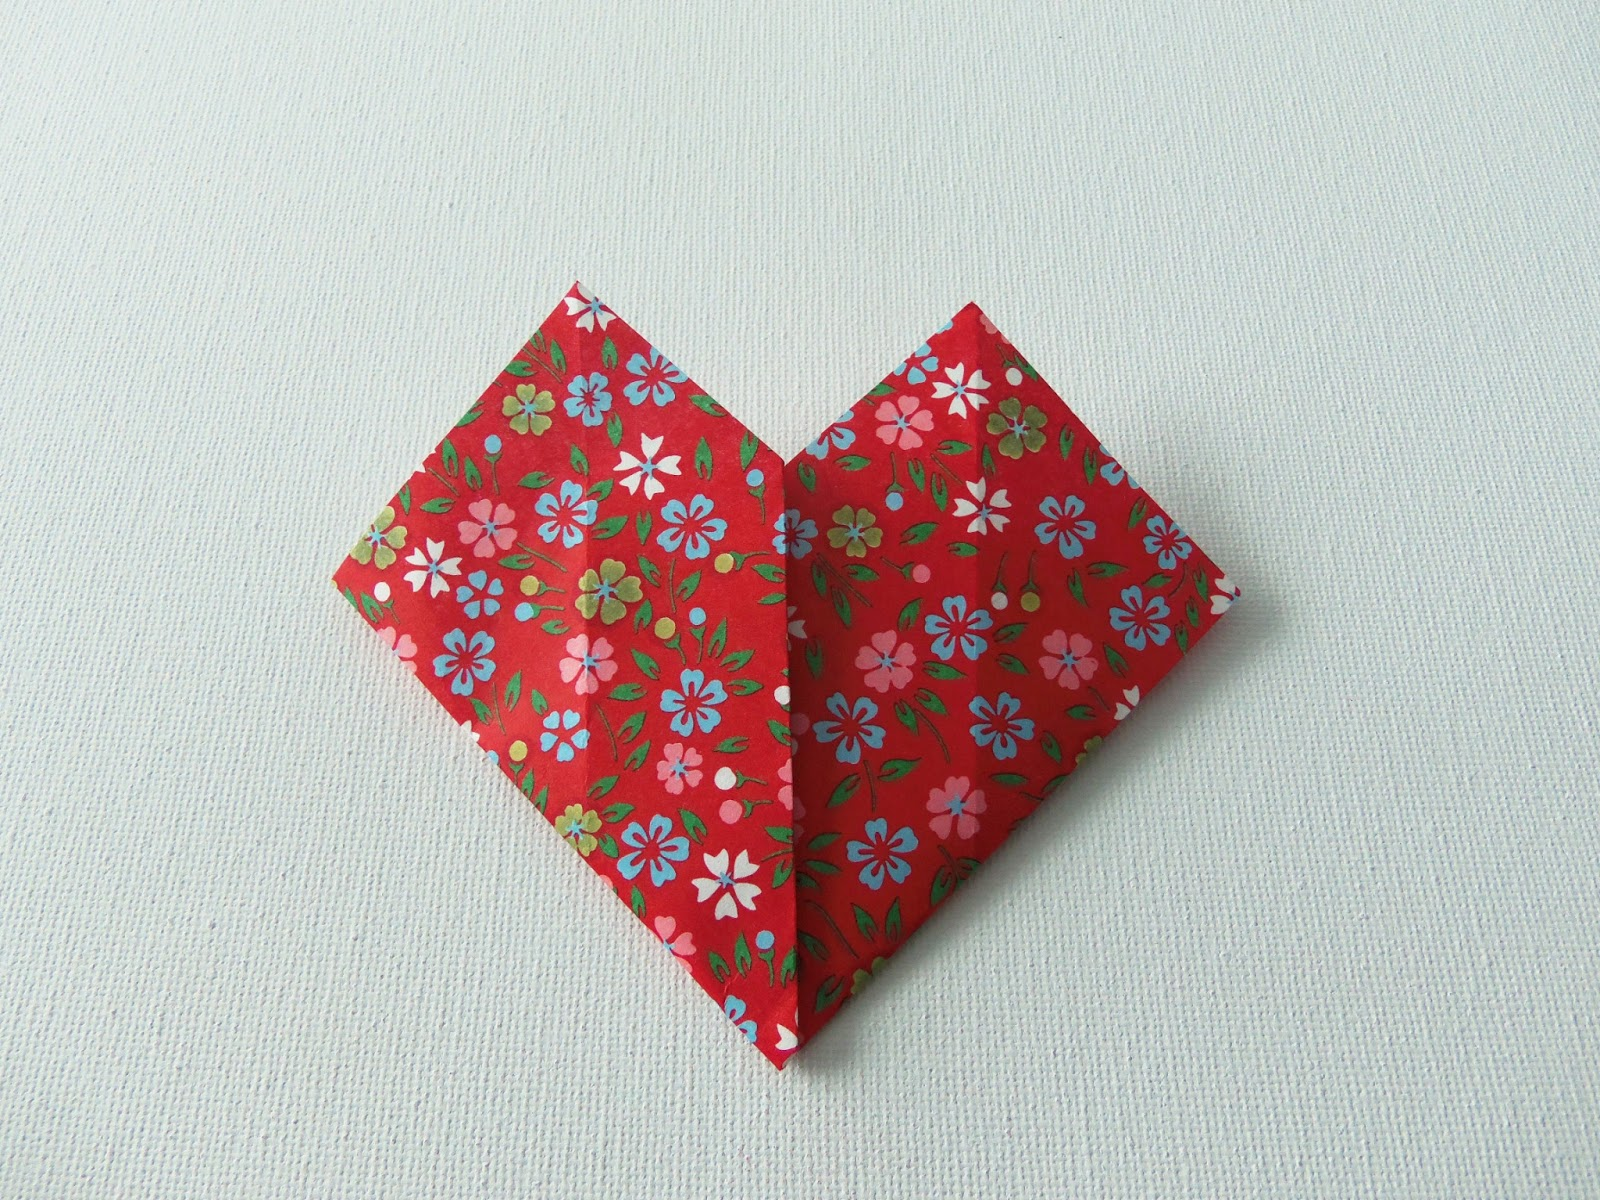 Easy Origami Hearts - Crafty Little Gnome - photo#30